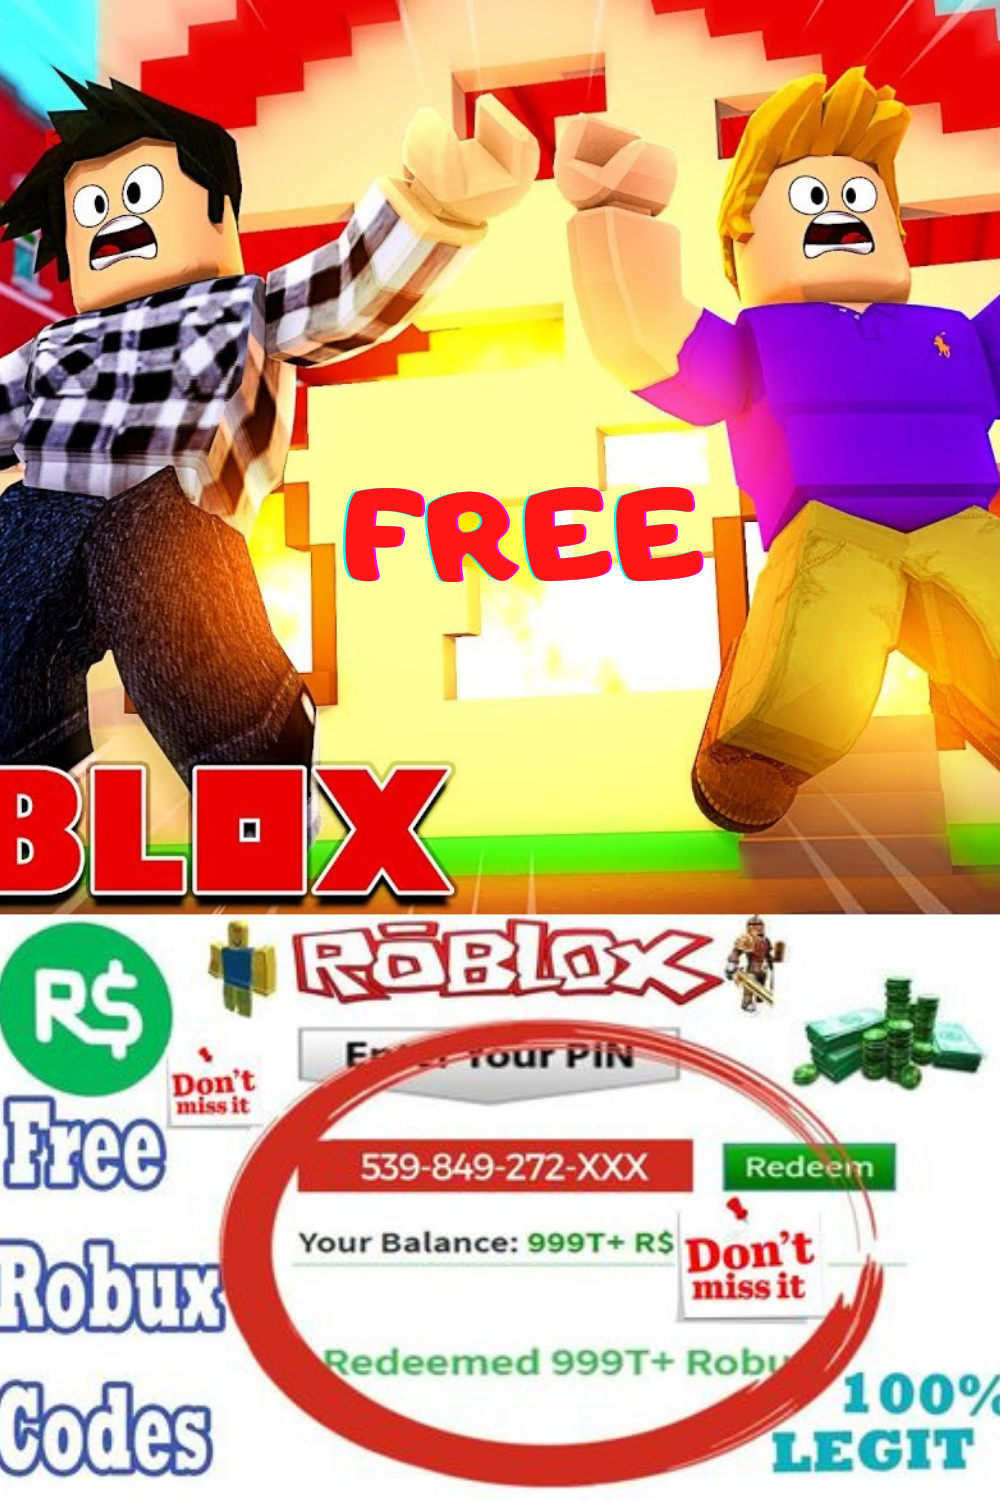 Chica Roblox In 2020 Roblox Animation Roblox Pictures Cute Tumblr Wallpaper